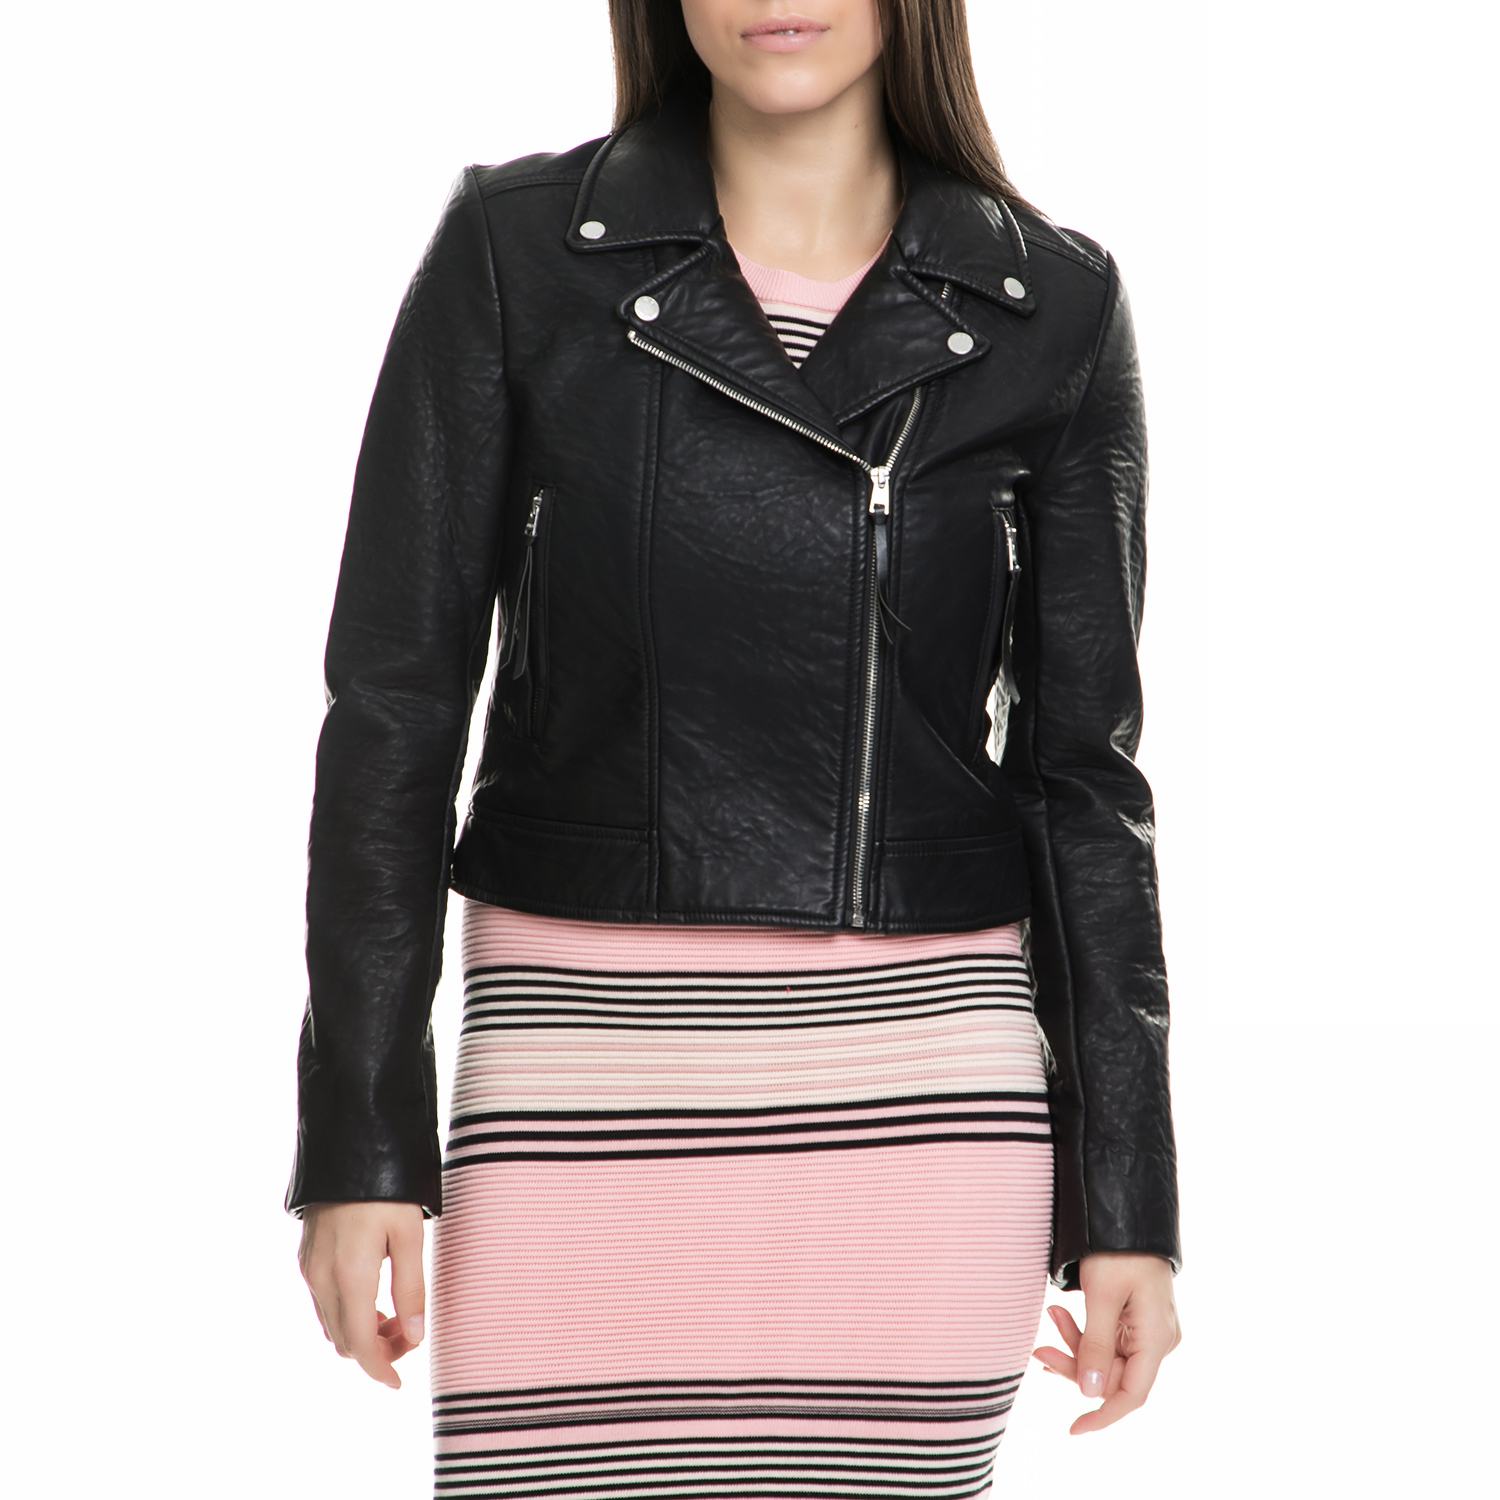 JUICY COUTURE – Γυναικείο τζάκετ JUICY COUTURE μαύρο 8fc0deb0174